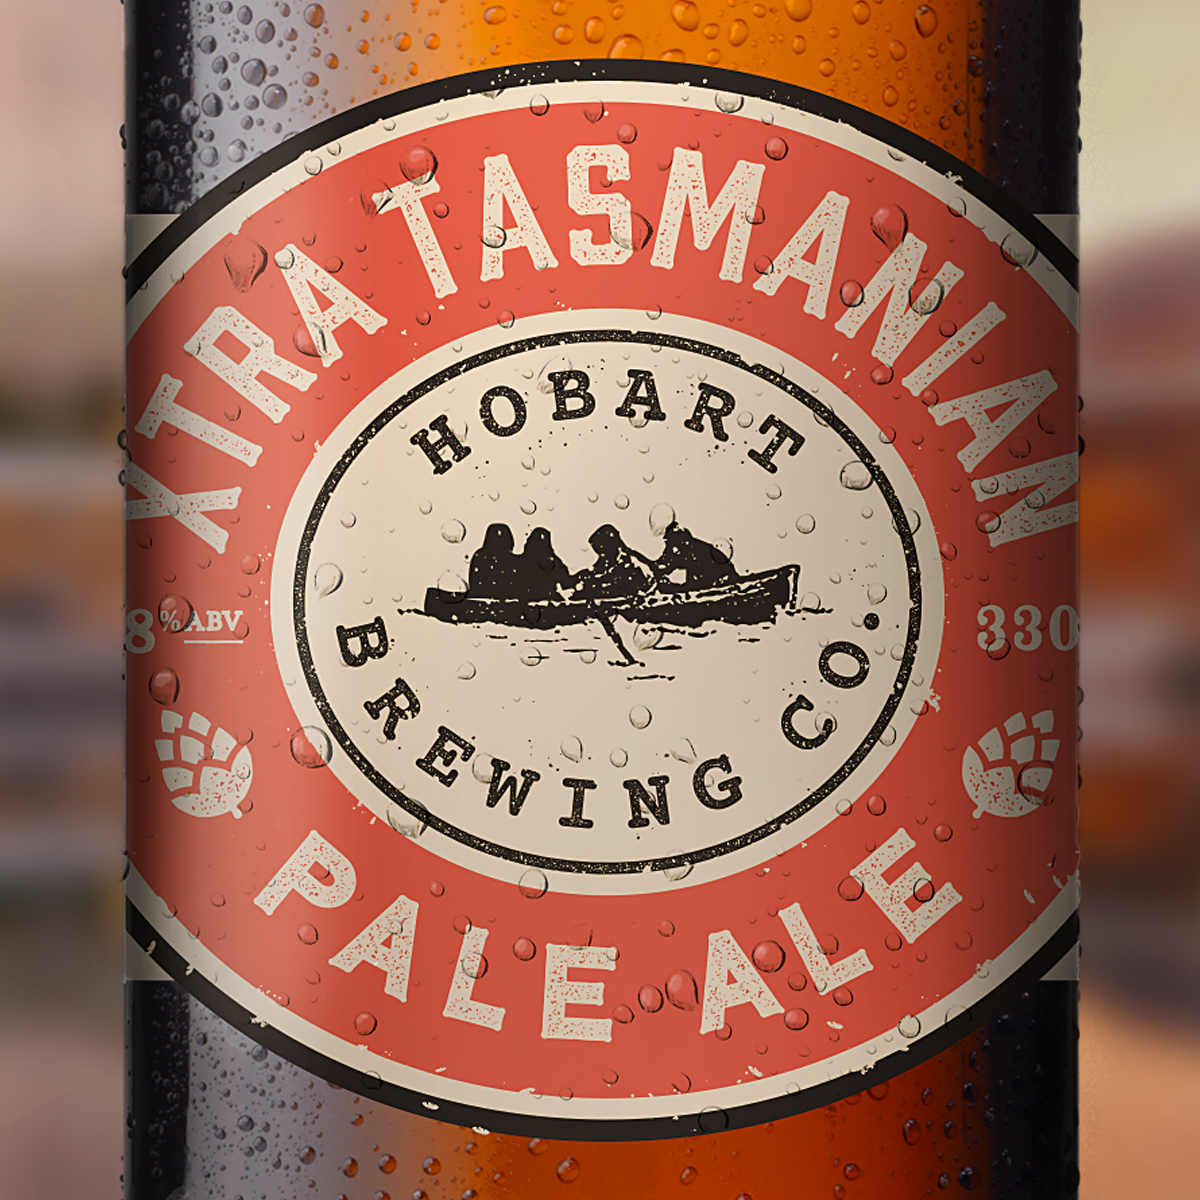 Hobart Brewing Company - packaging featuring brand mark refresh